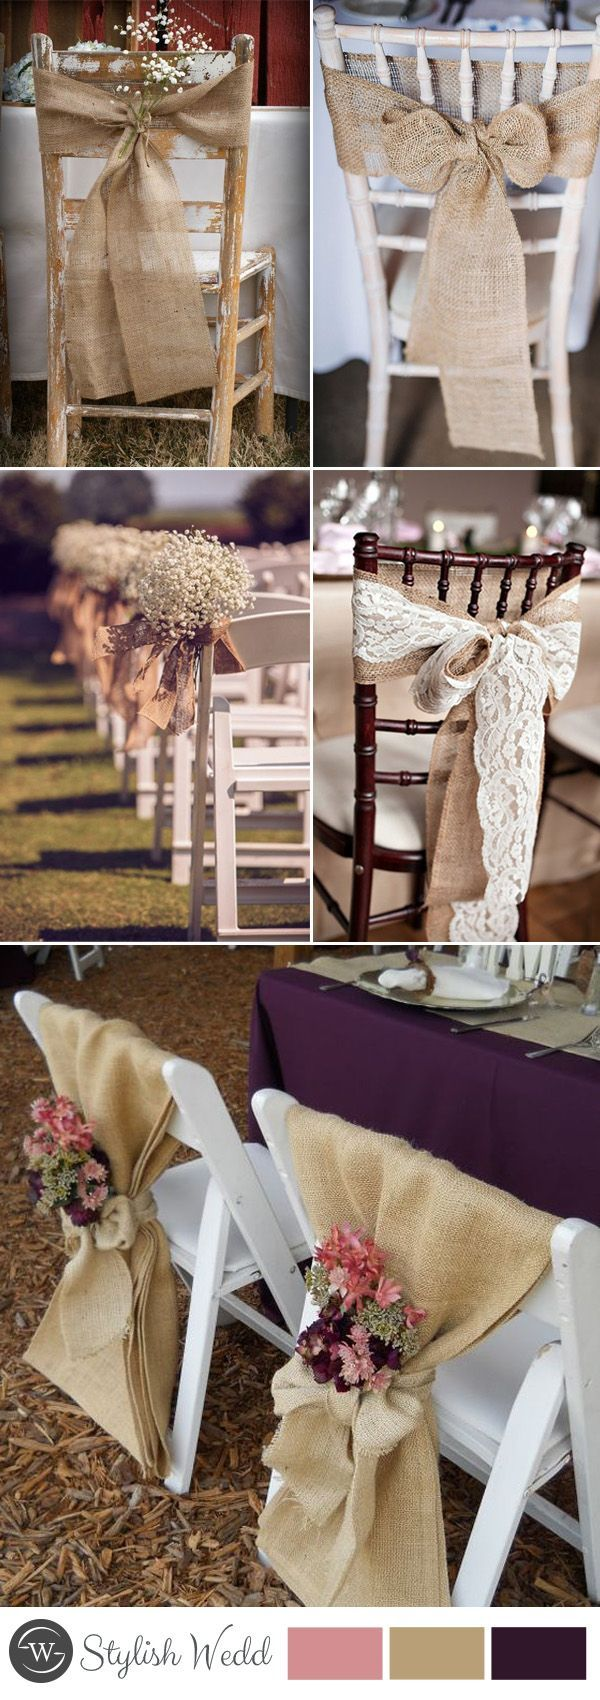 Cheap Burlap Chair Sashes Swivel Mid Century Best 25+ Wedding Covers Ideas On Pinterest | Decorations, Country ...